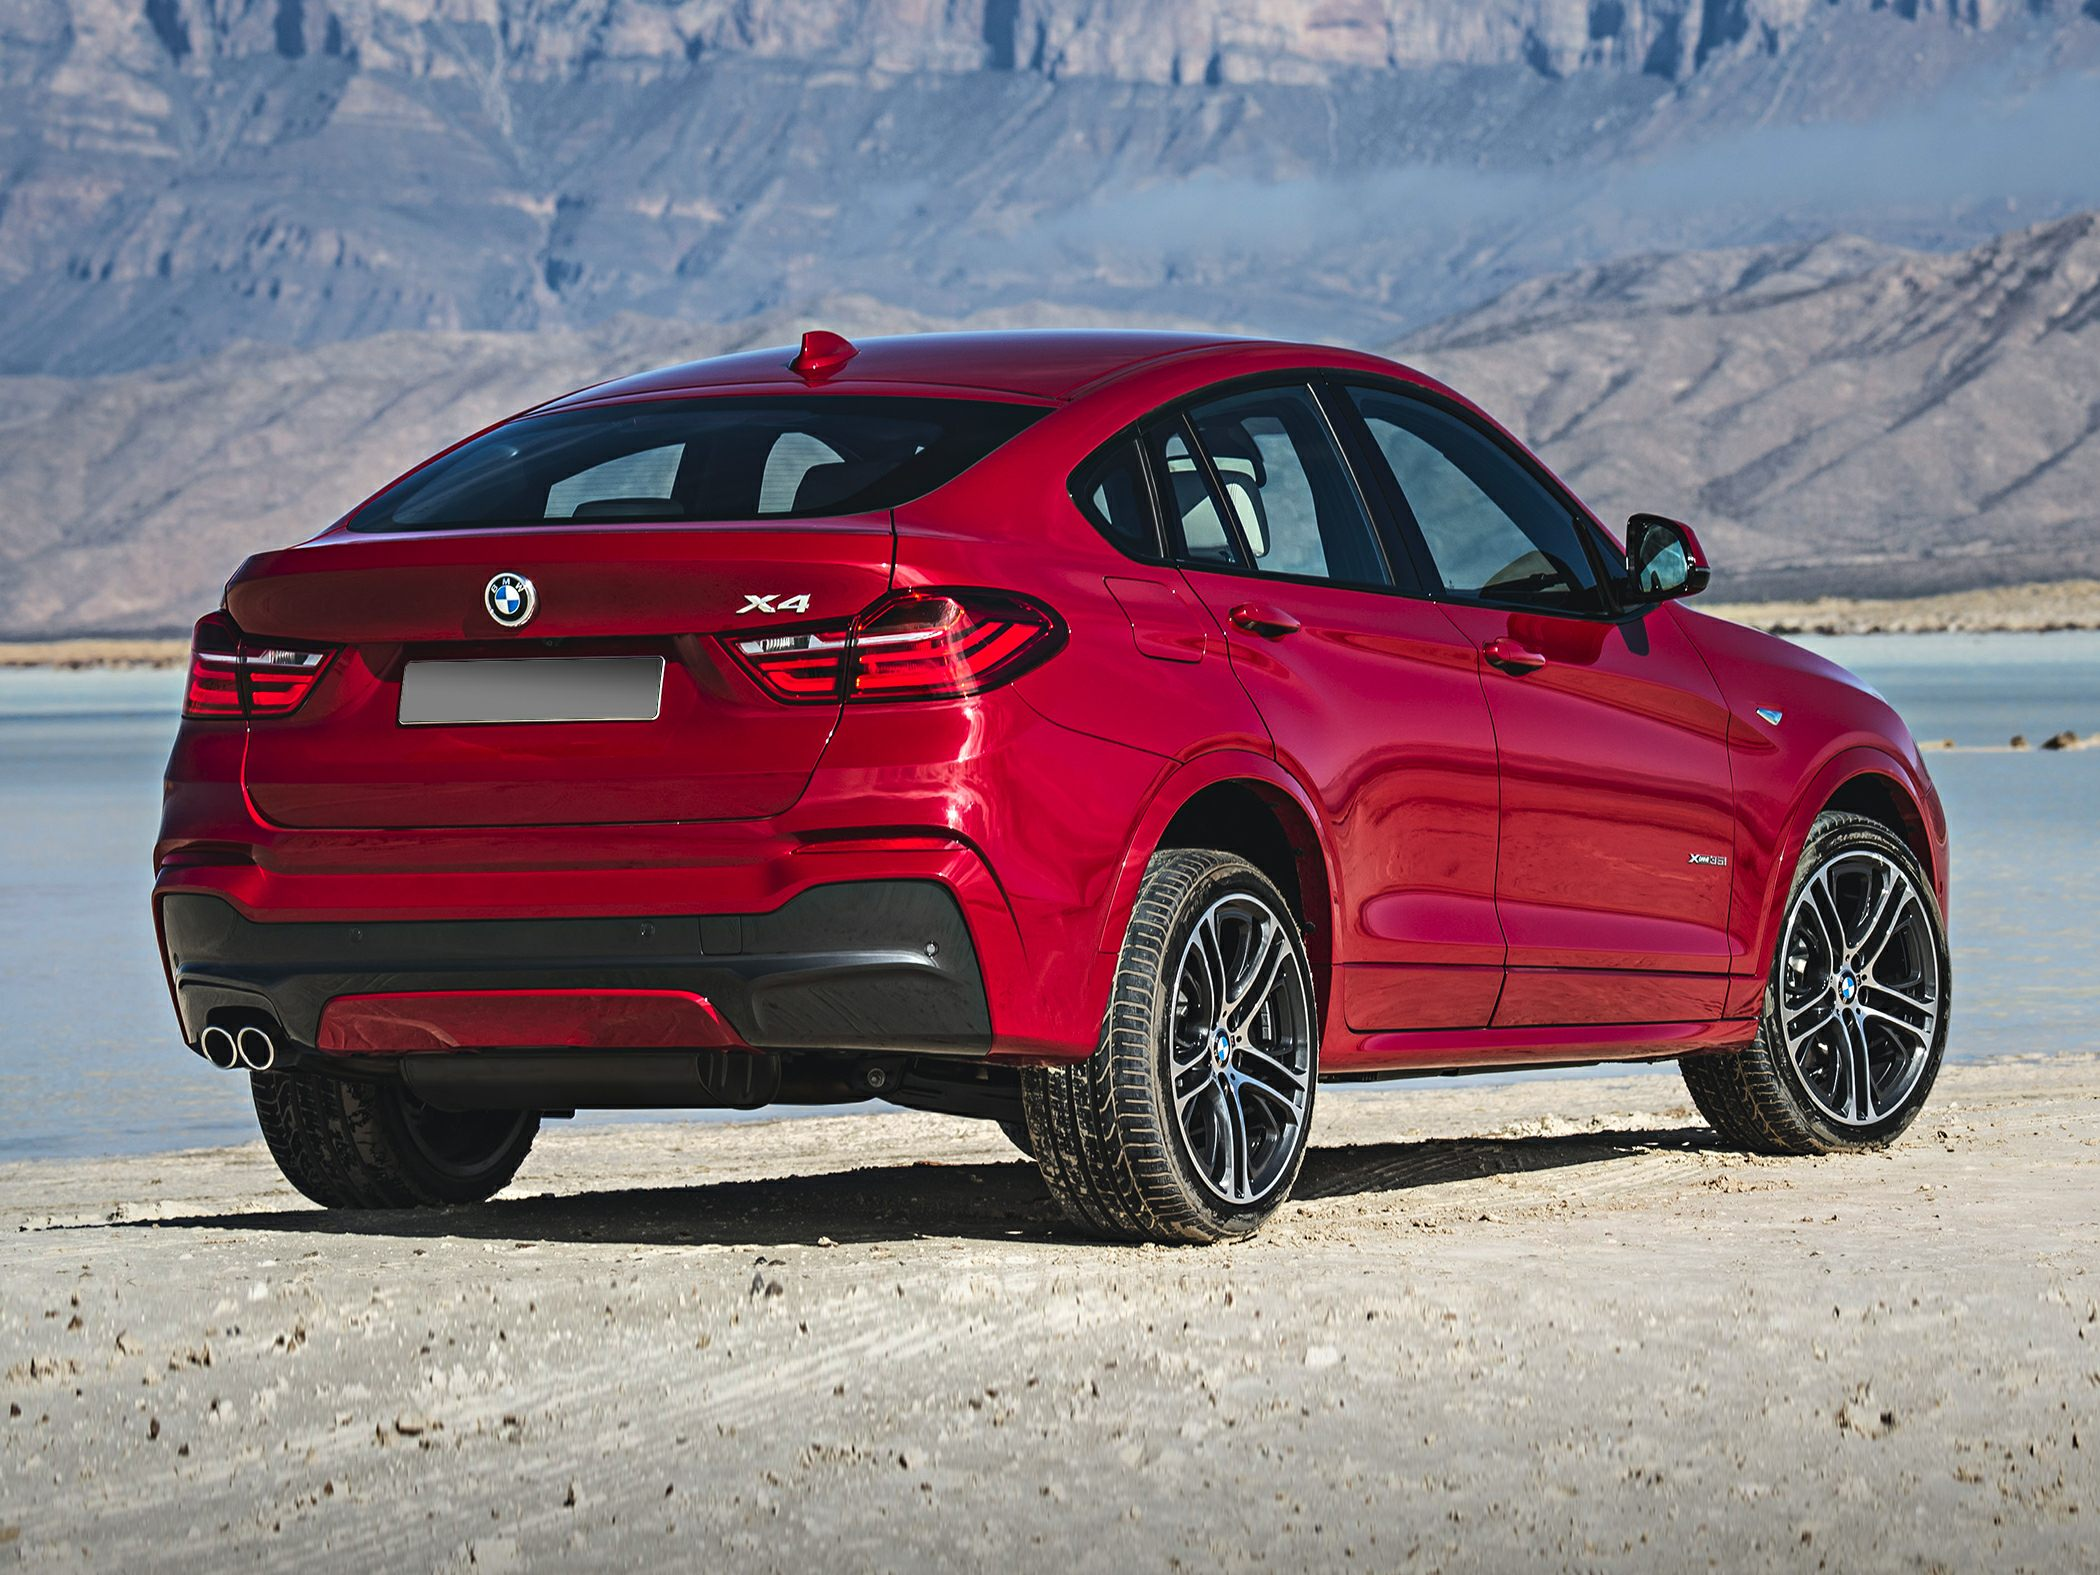 2017 bmw x4 deals prices incentives leases overview carsdirect. Black Bedroom Furniture Sets. Home Design Ideas